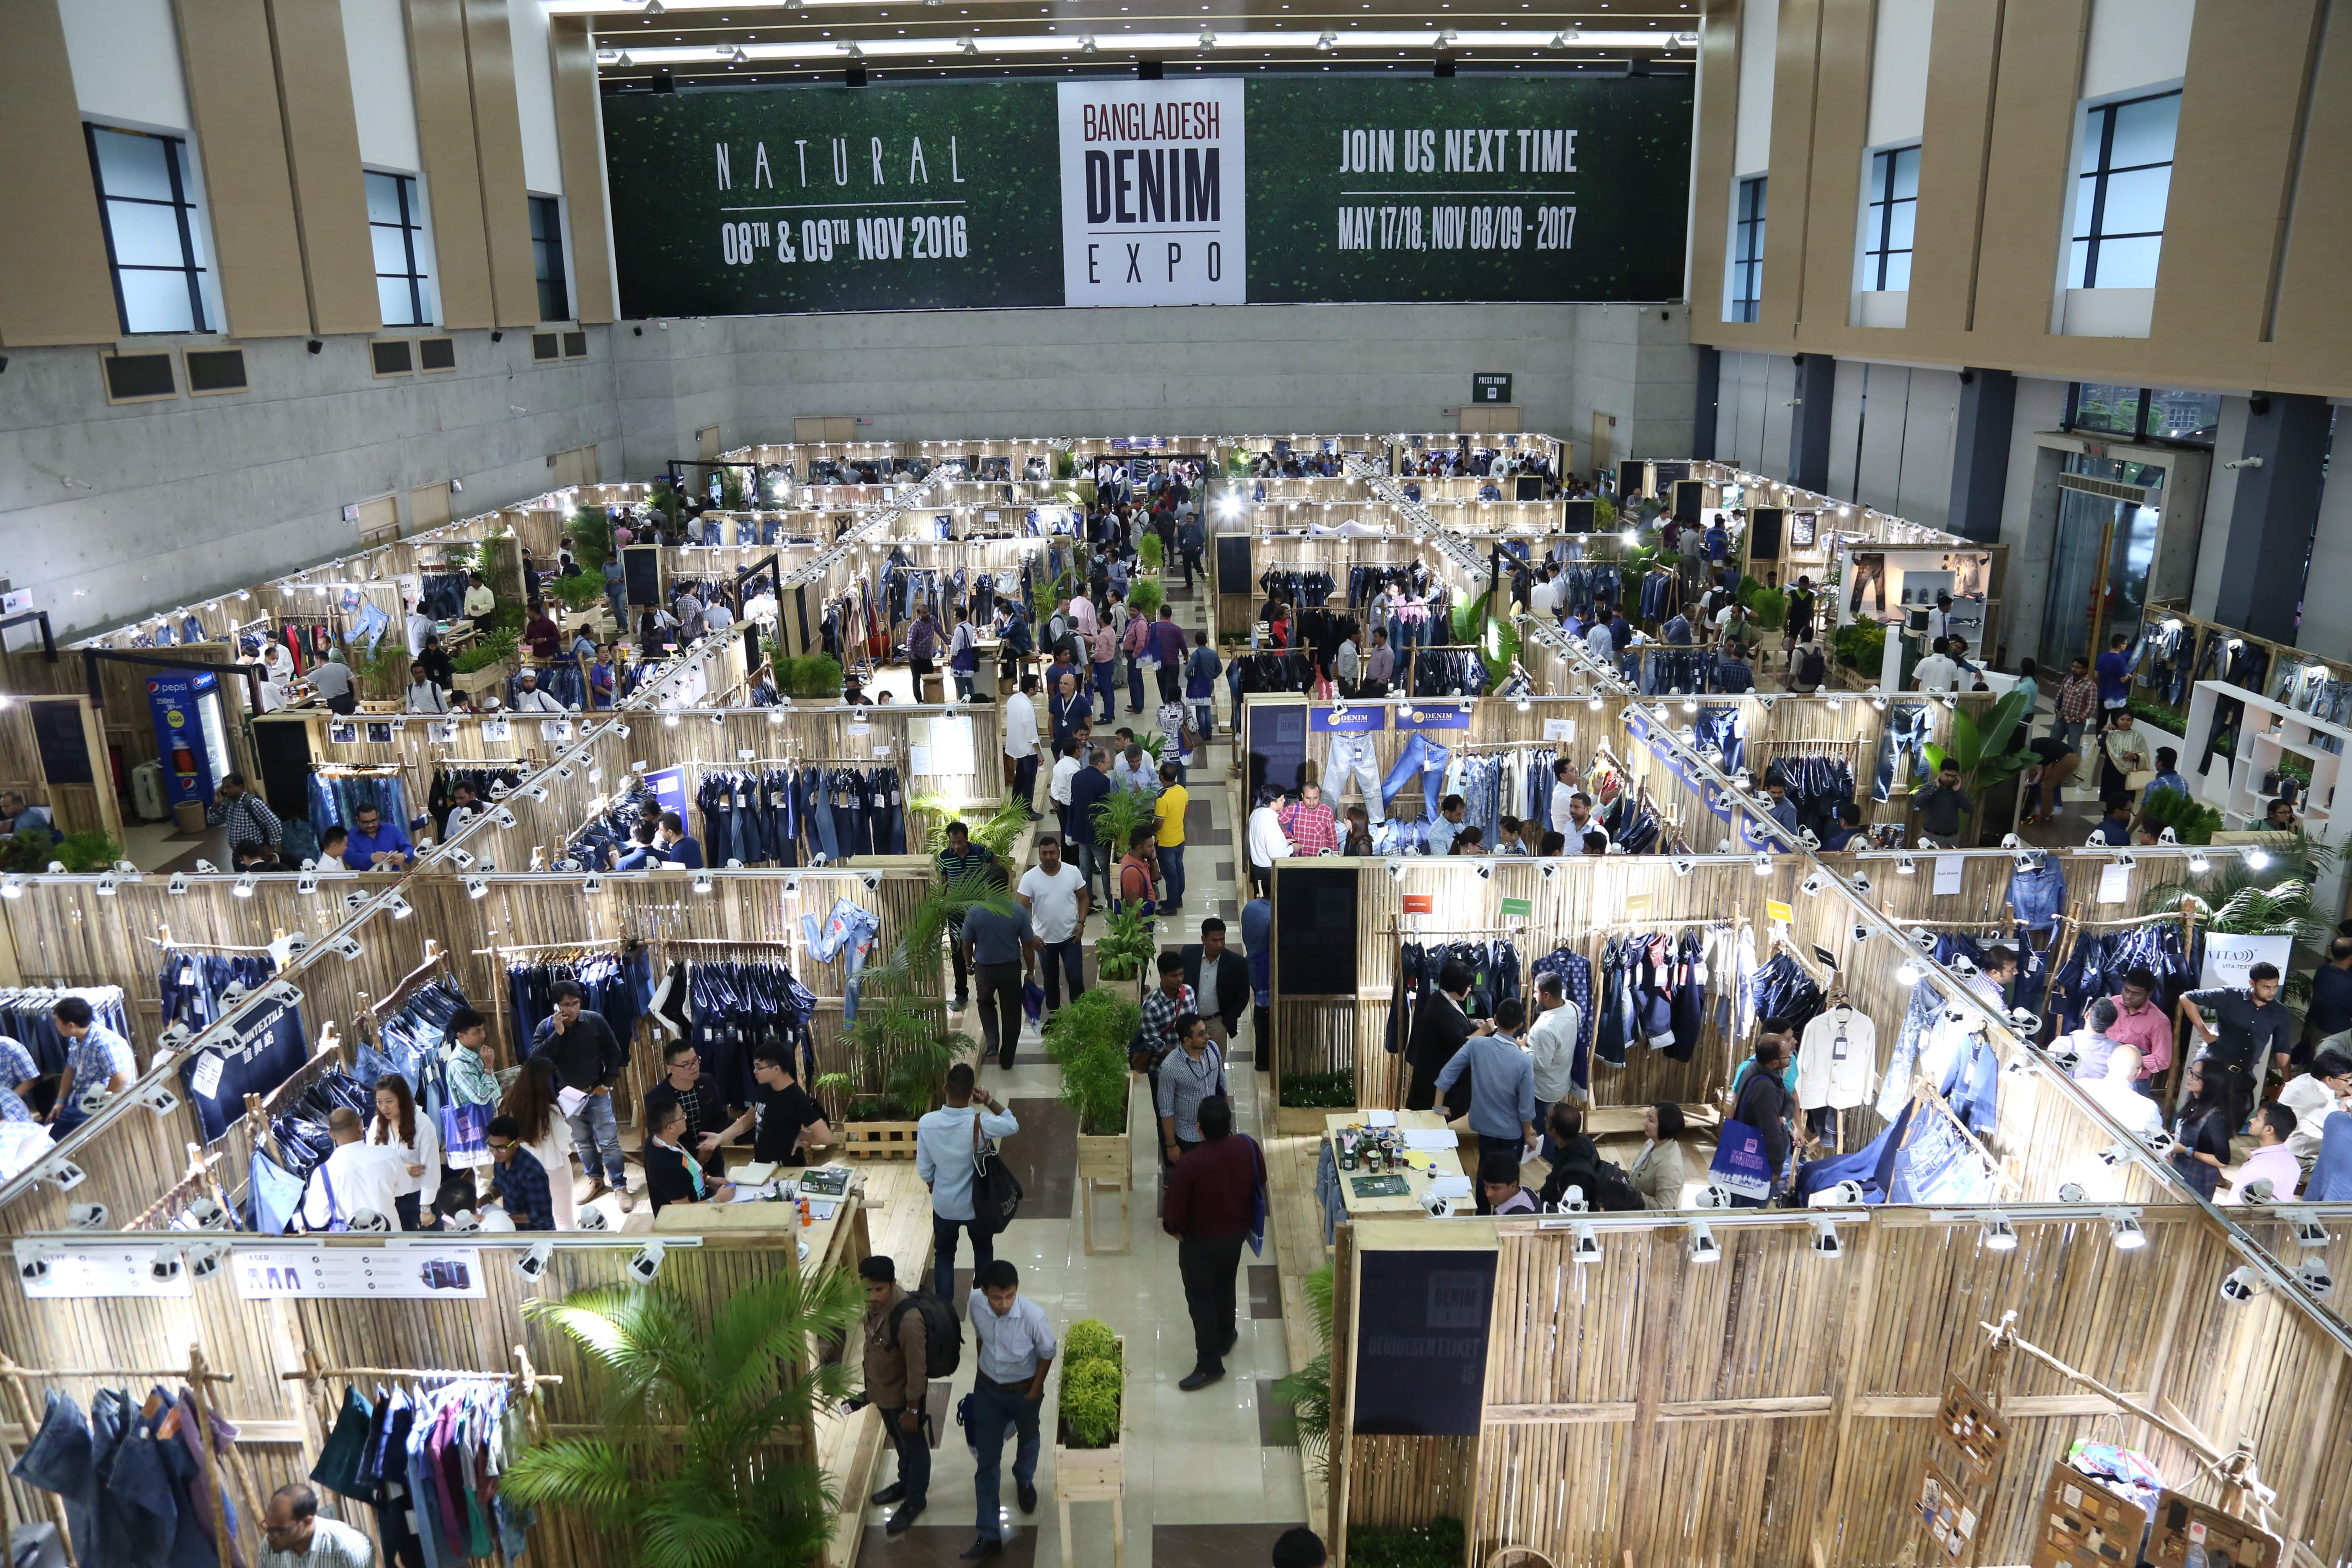 Bangladesh Denim Expo presenta la Denim Innovation Night!